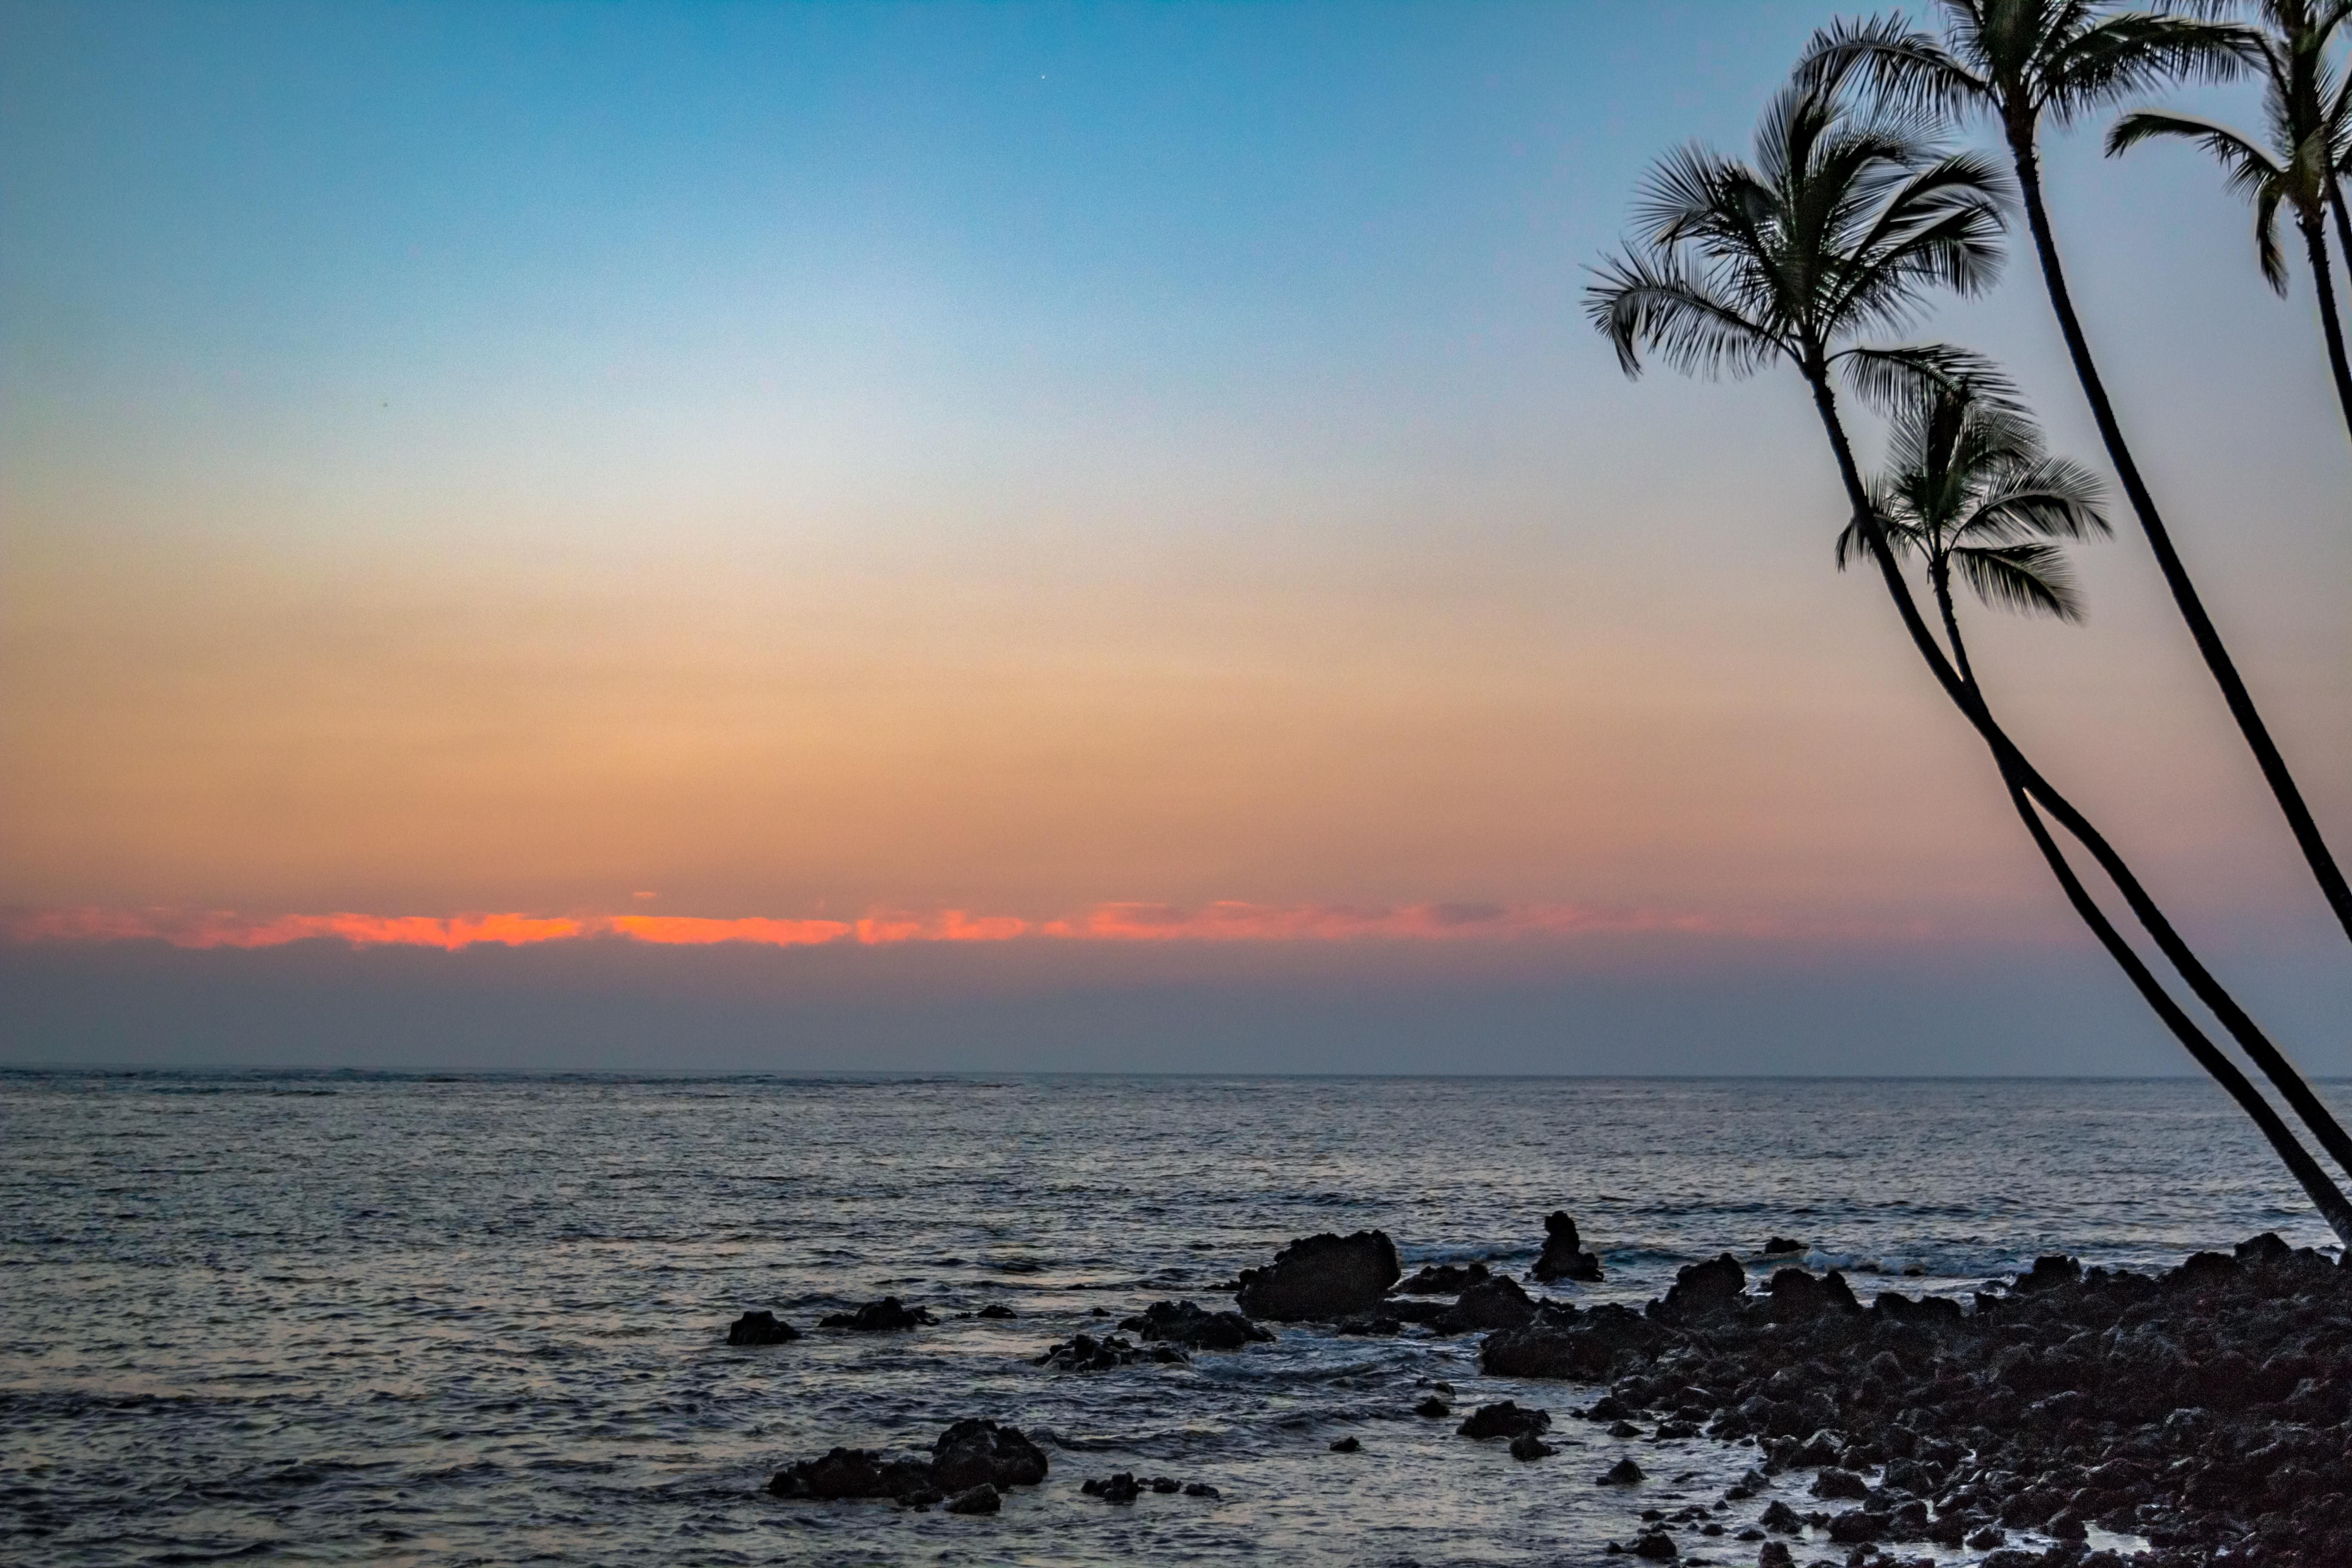 Hawaiian sunset oc x please check the website for more